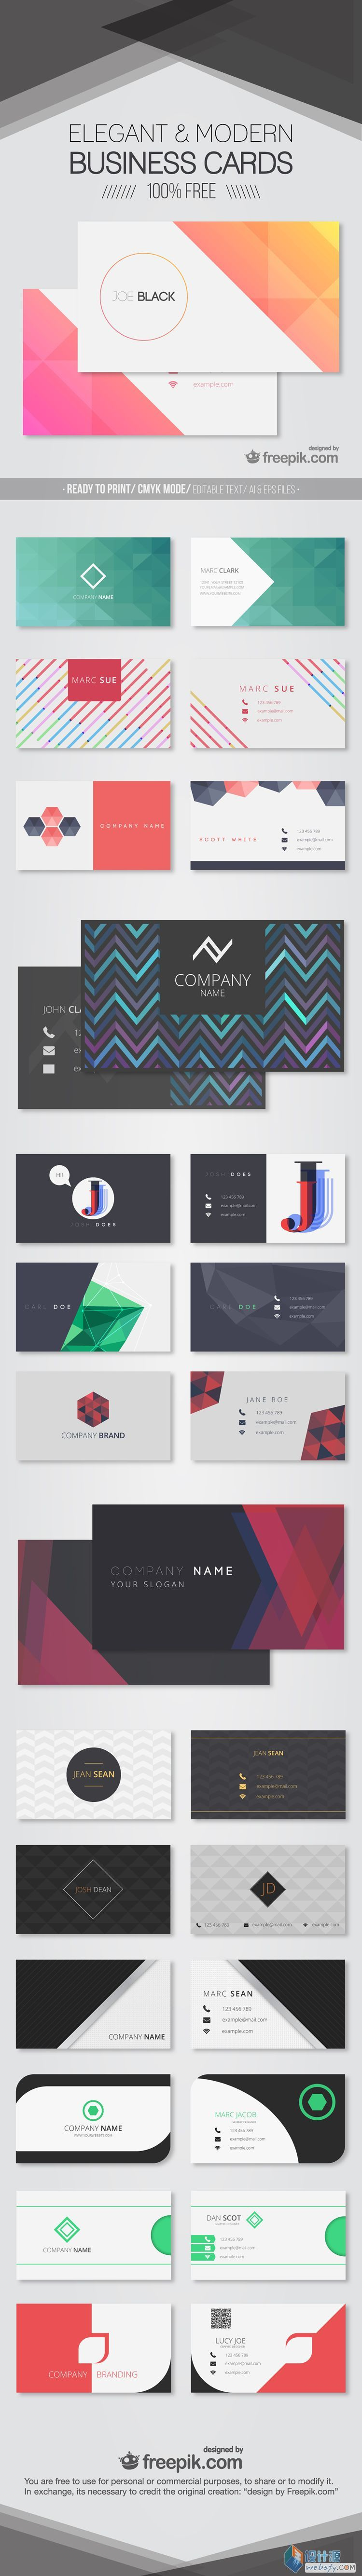 coverbusinesscards.jpg